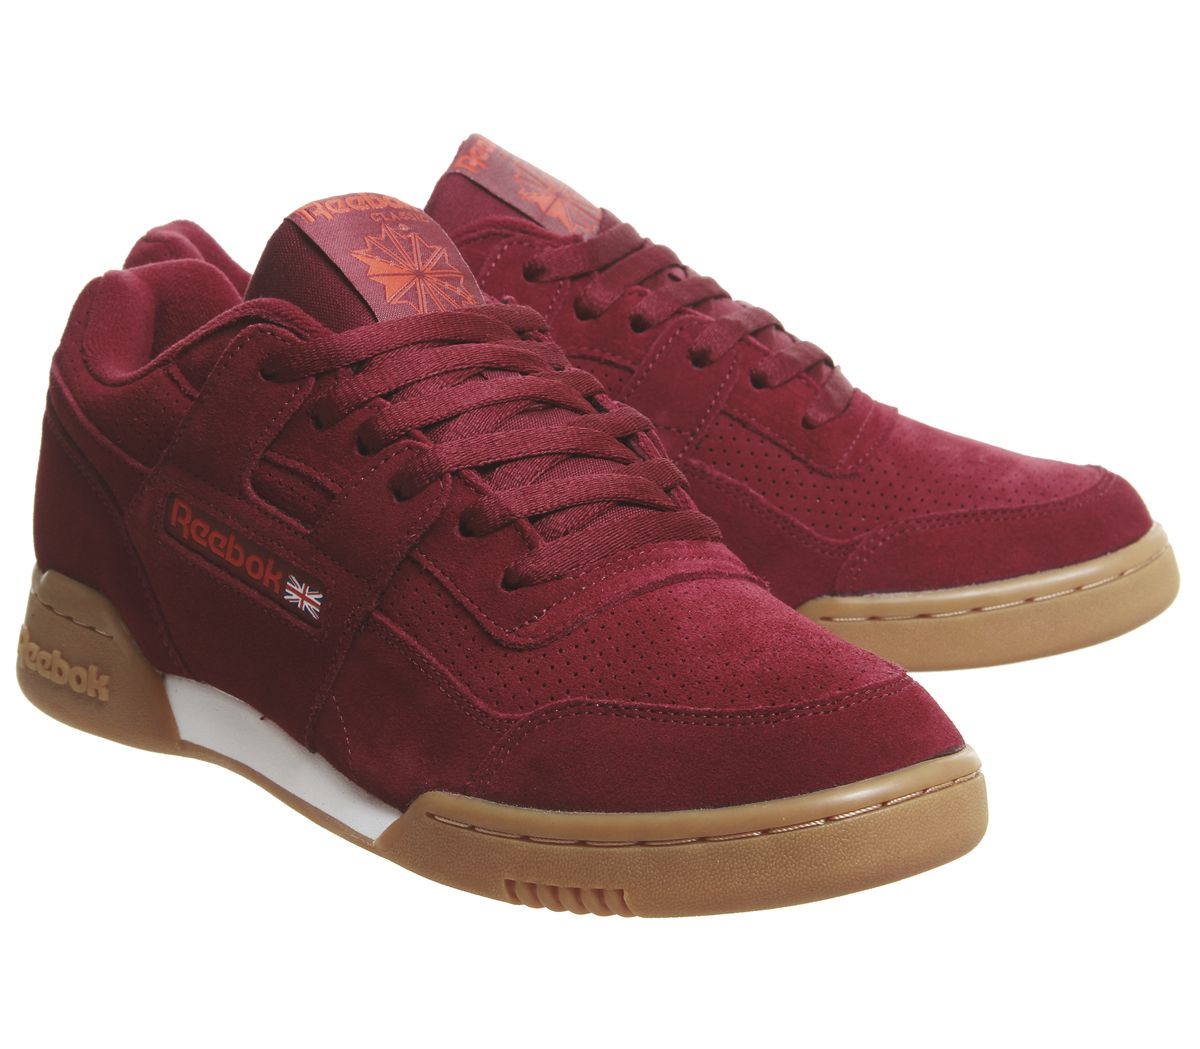 4d0b08ac276 Sentinel Reebok Workout Plus Trainers Collegiate Burgundy White Gum  Trainers Shoes